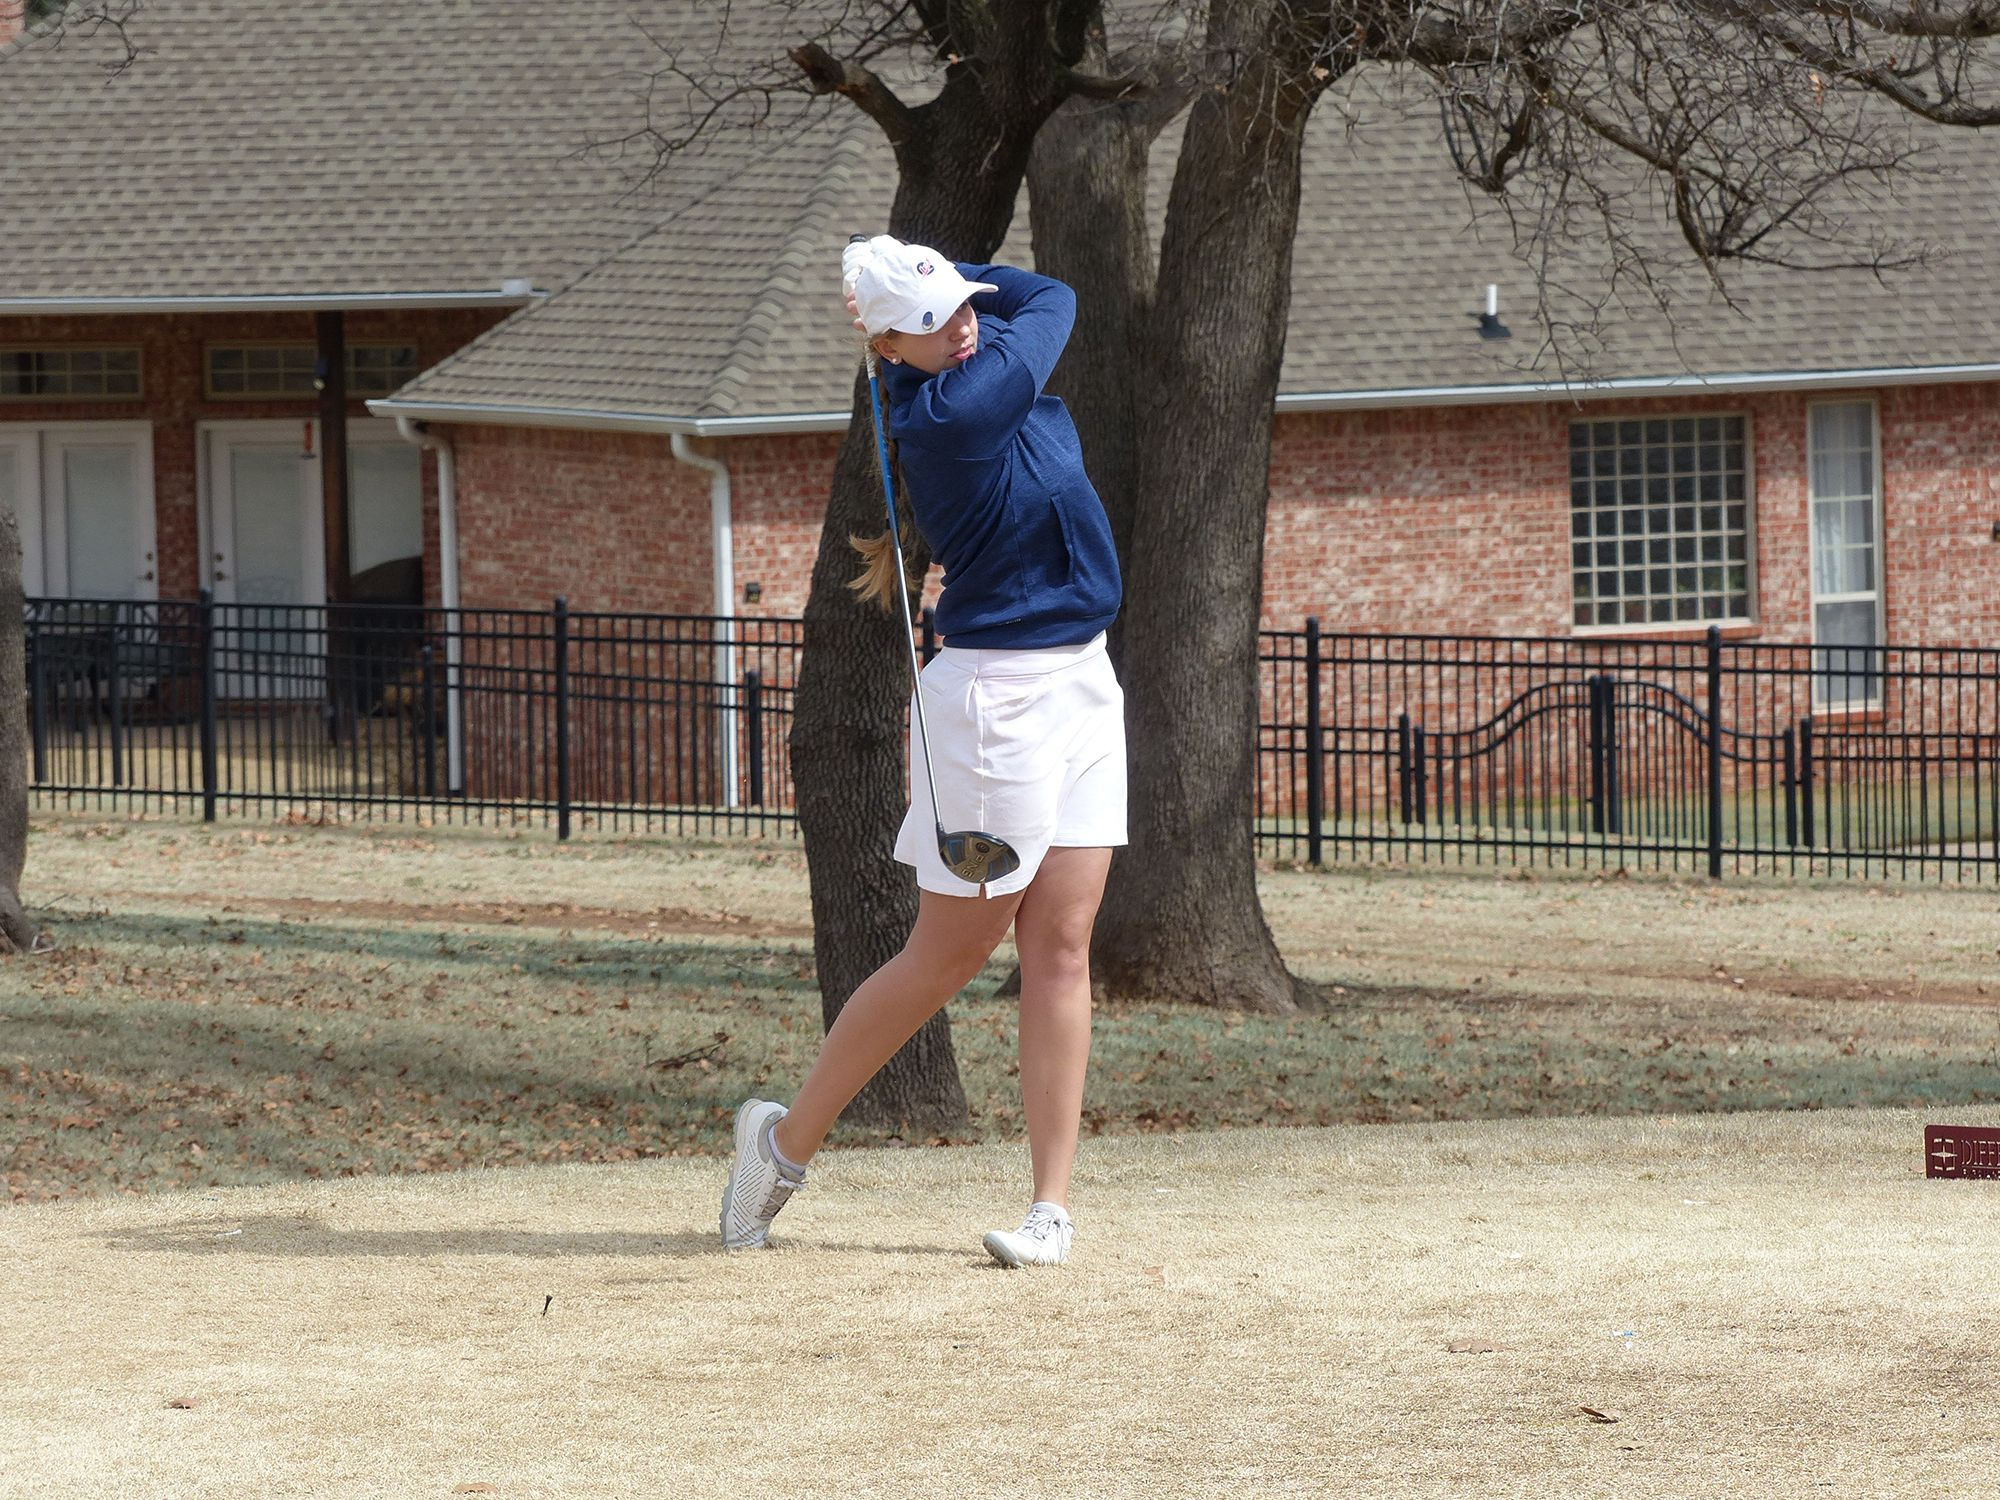 Jets' senior sets the tone in first golf tournament